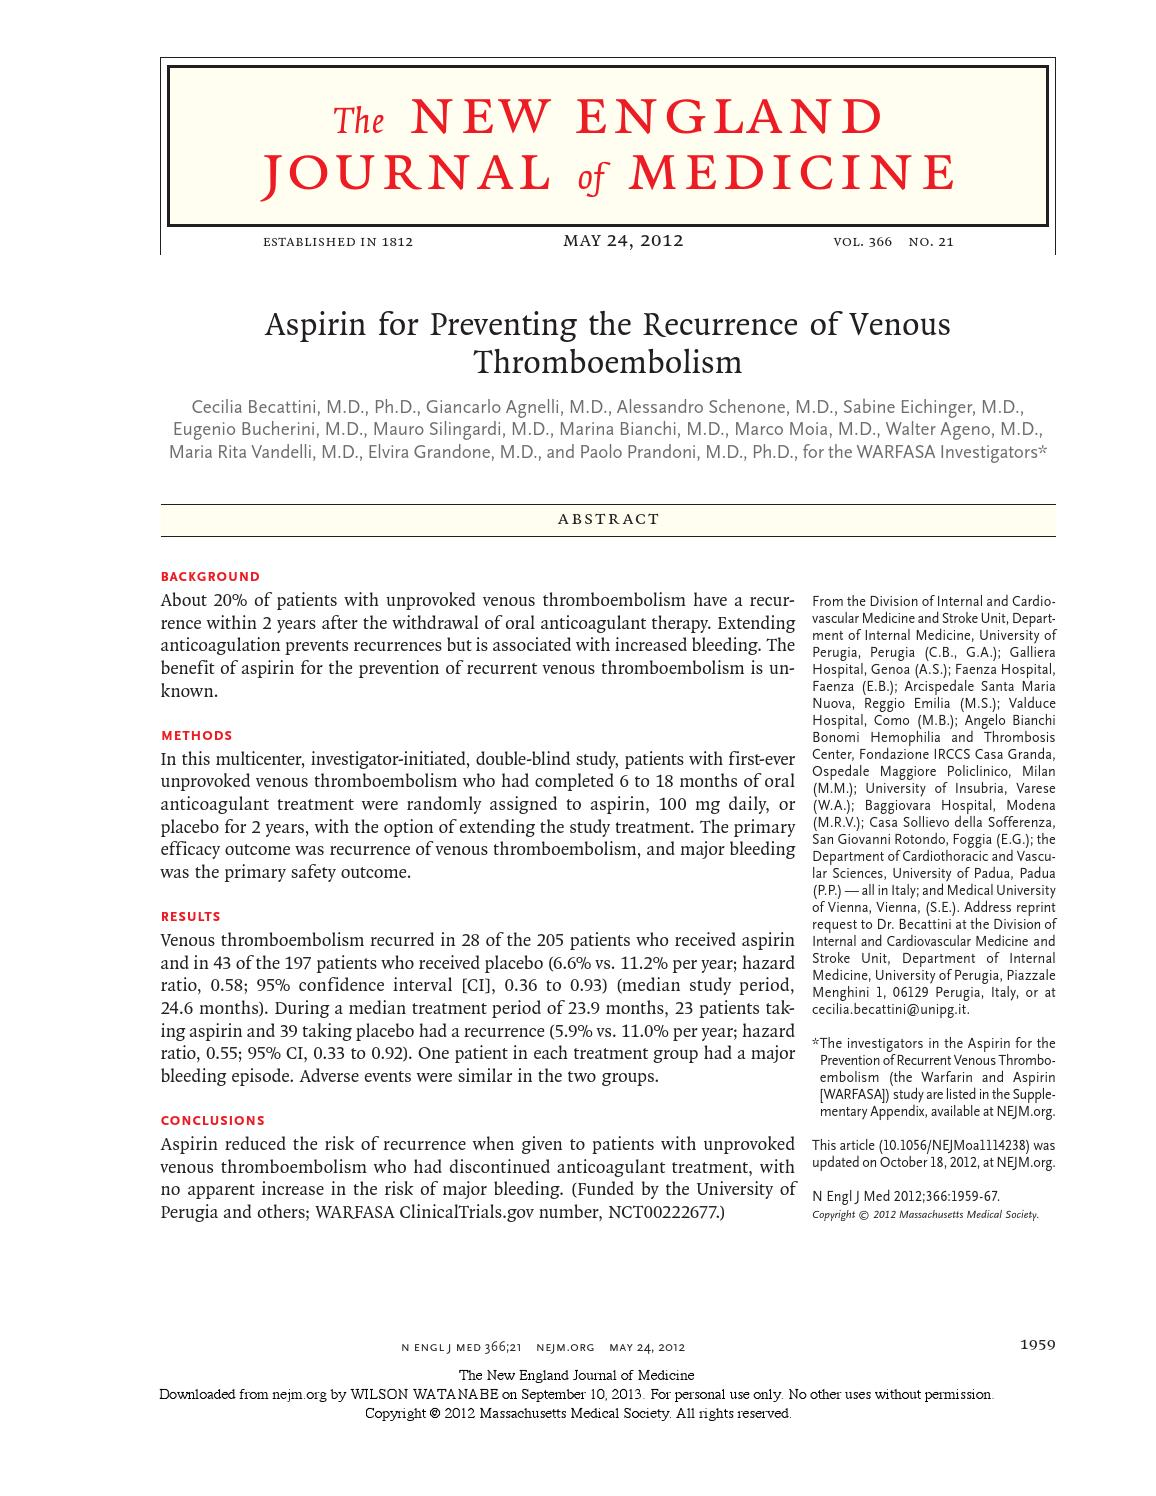 The new england journal medicine - nejm.org